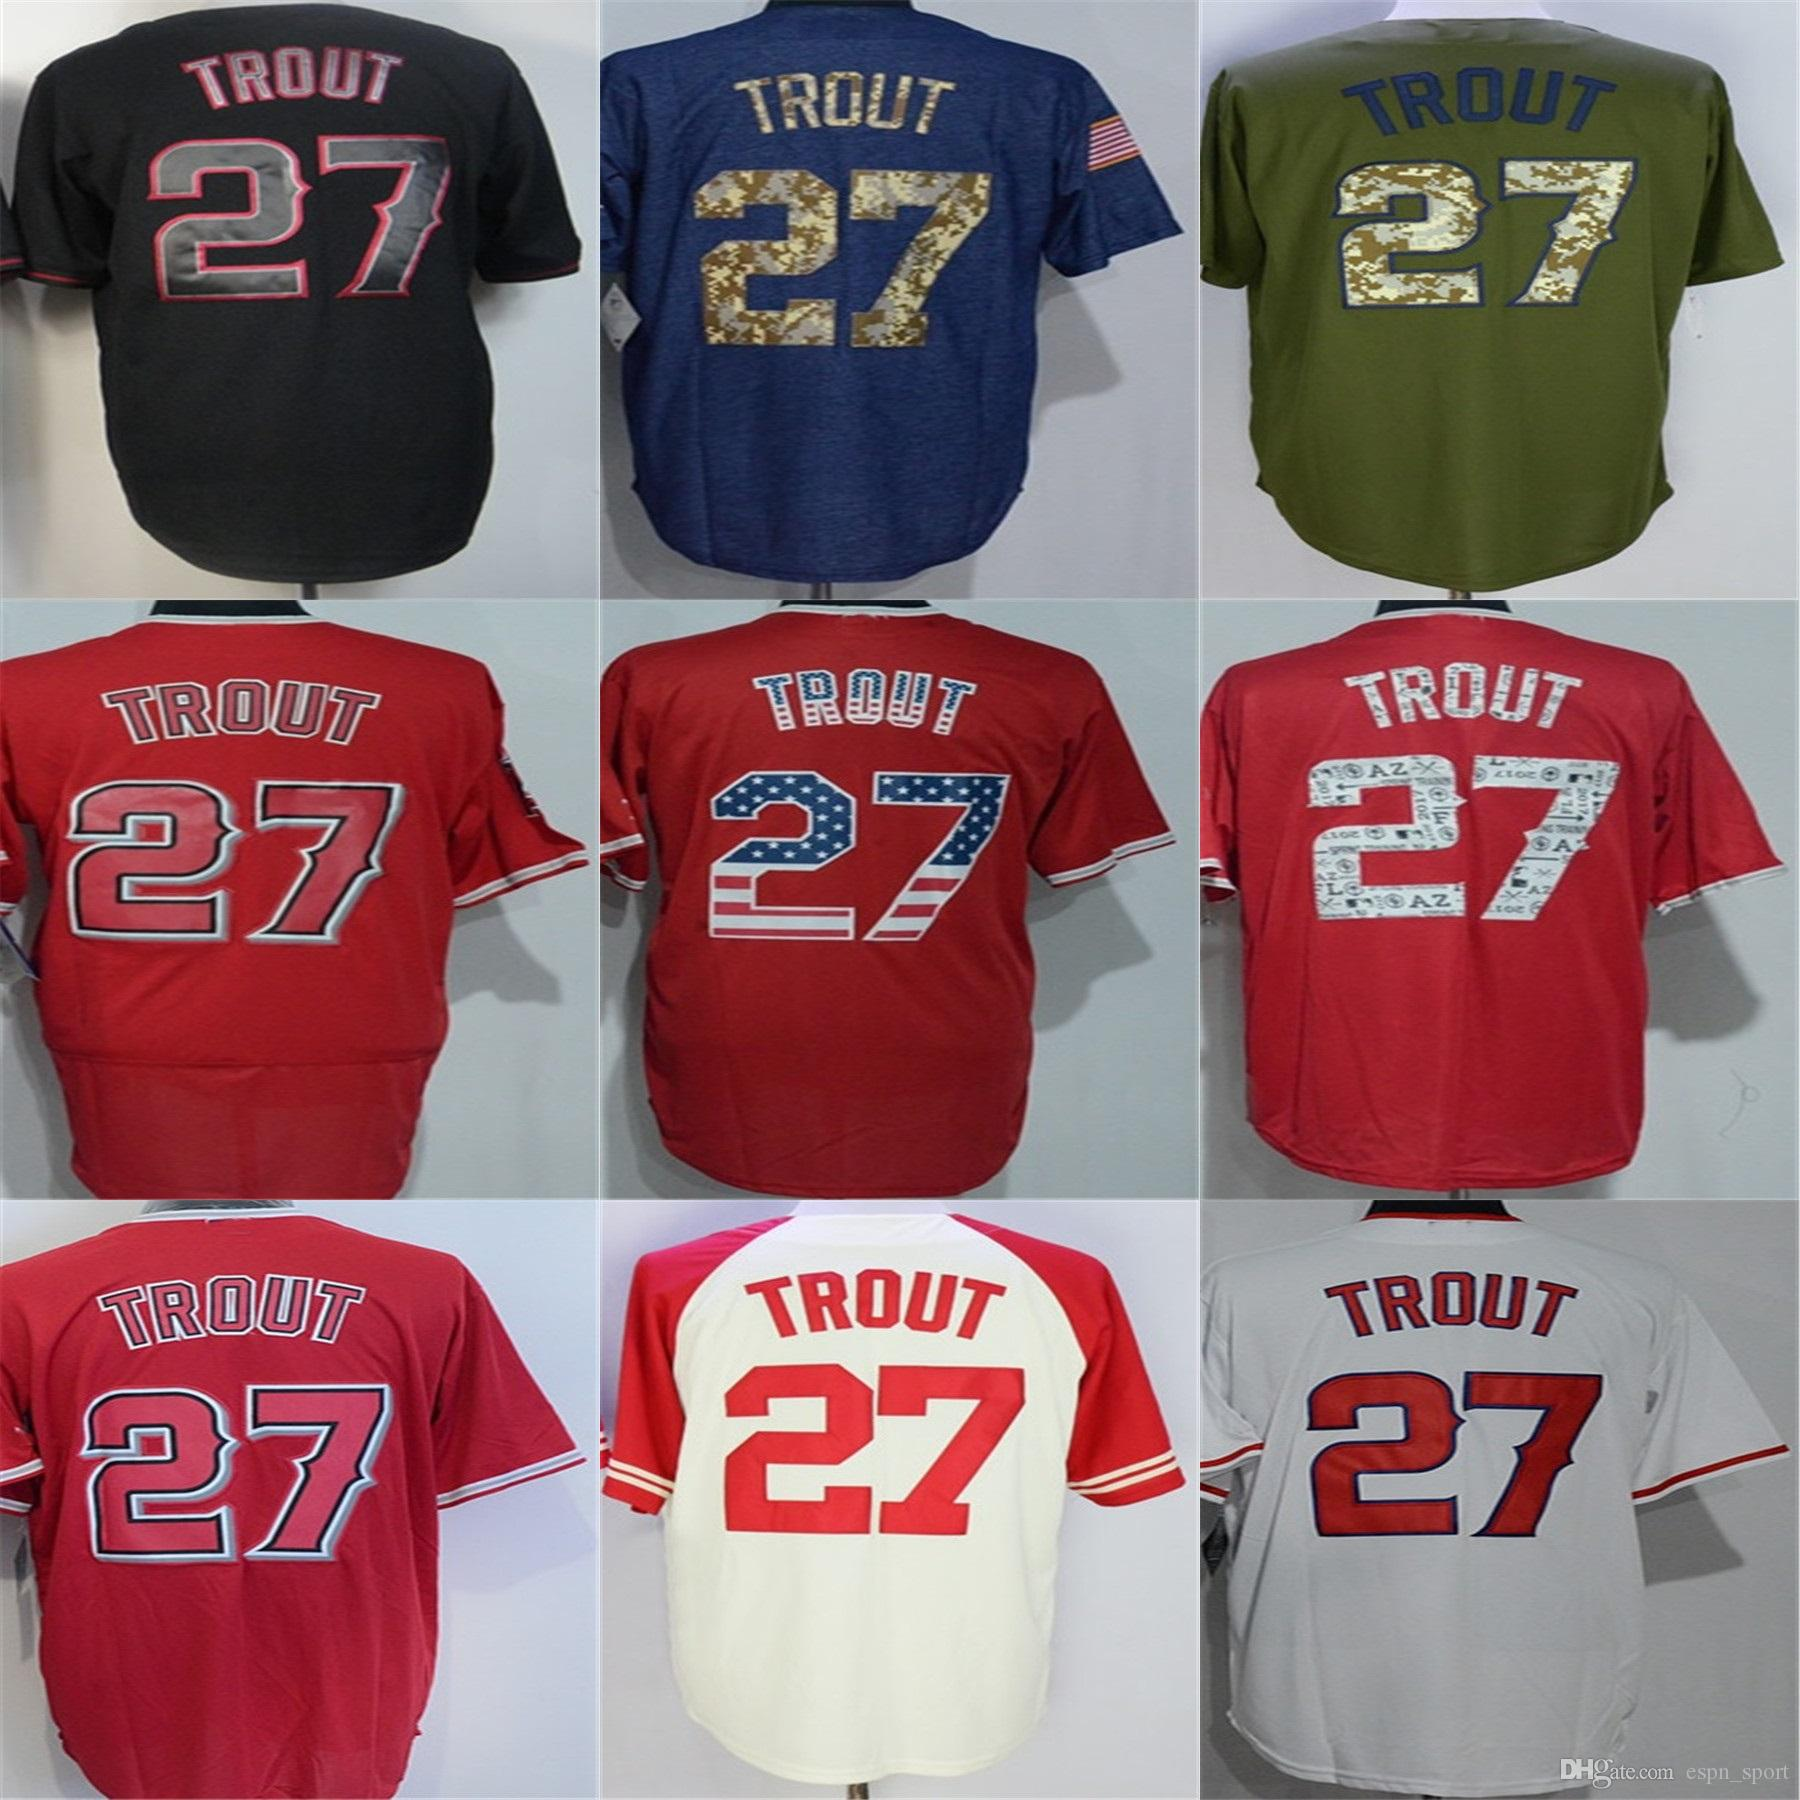 99b5a6926 ... authentic los angeles 27 mike trout jersey 100 stitched mens womens  kids toddlers white red black ...